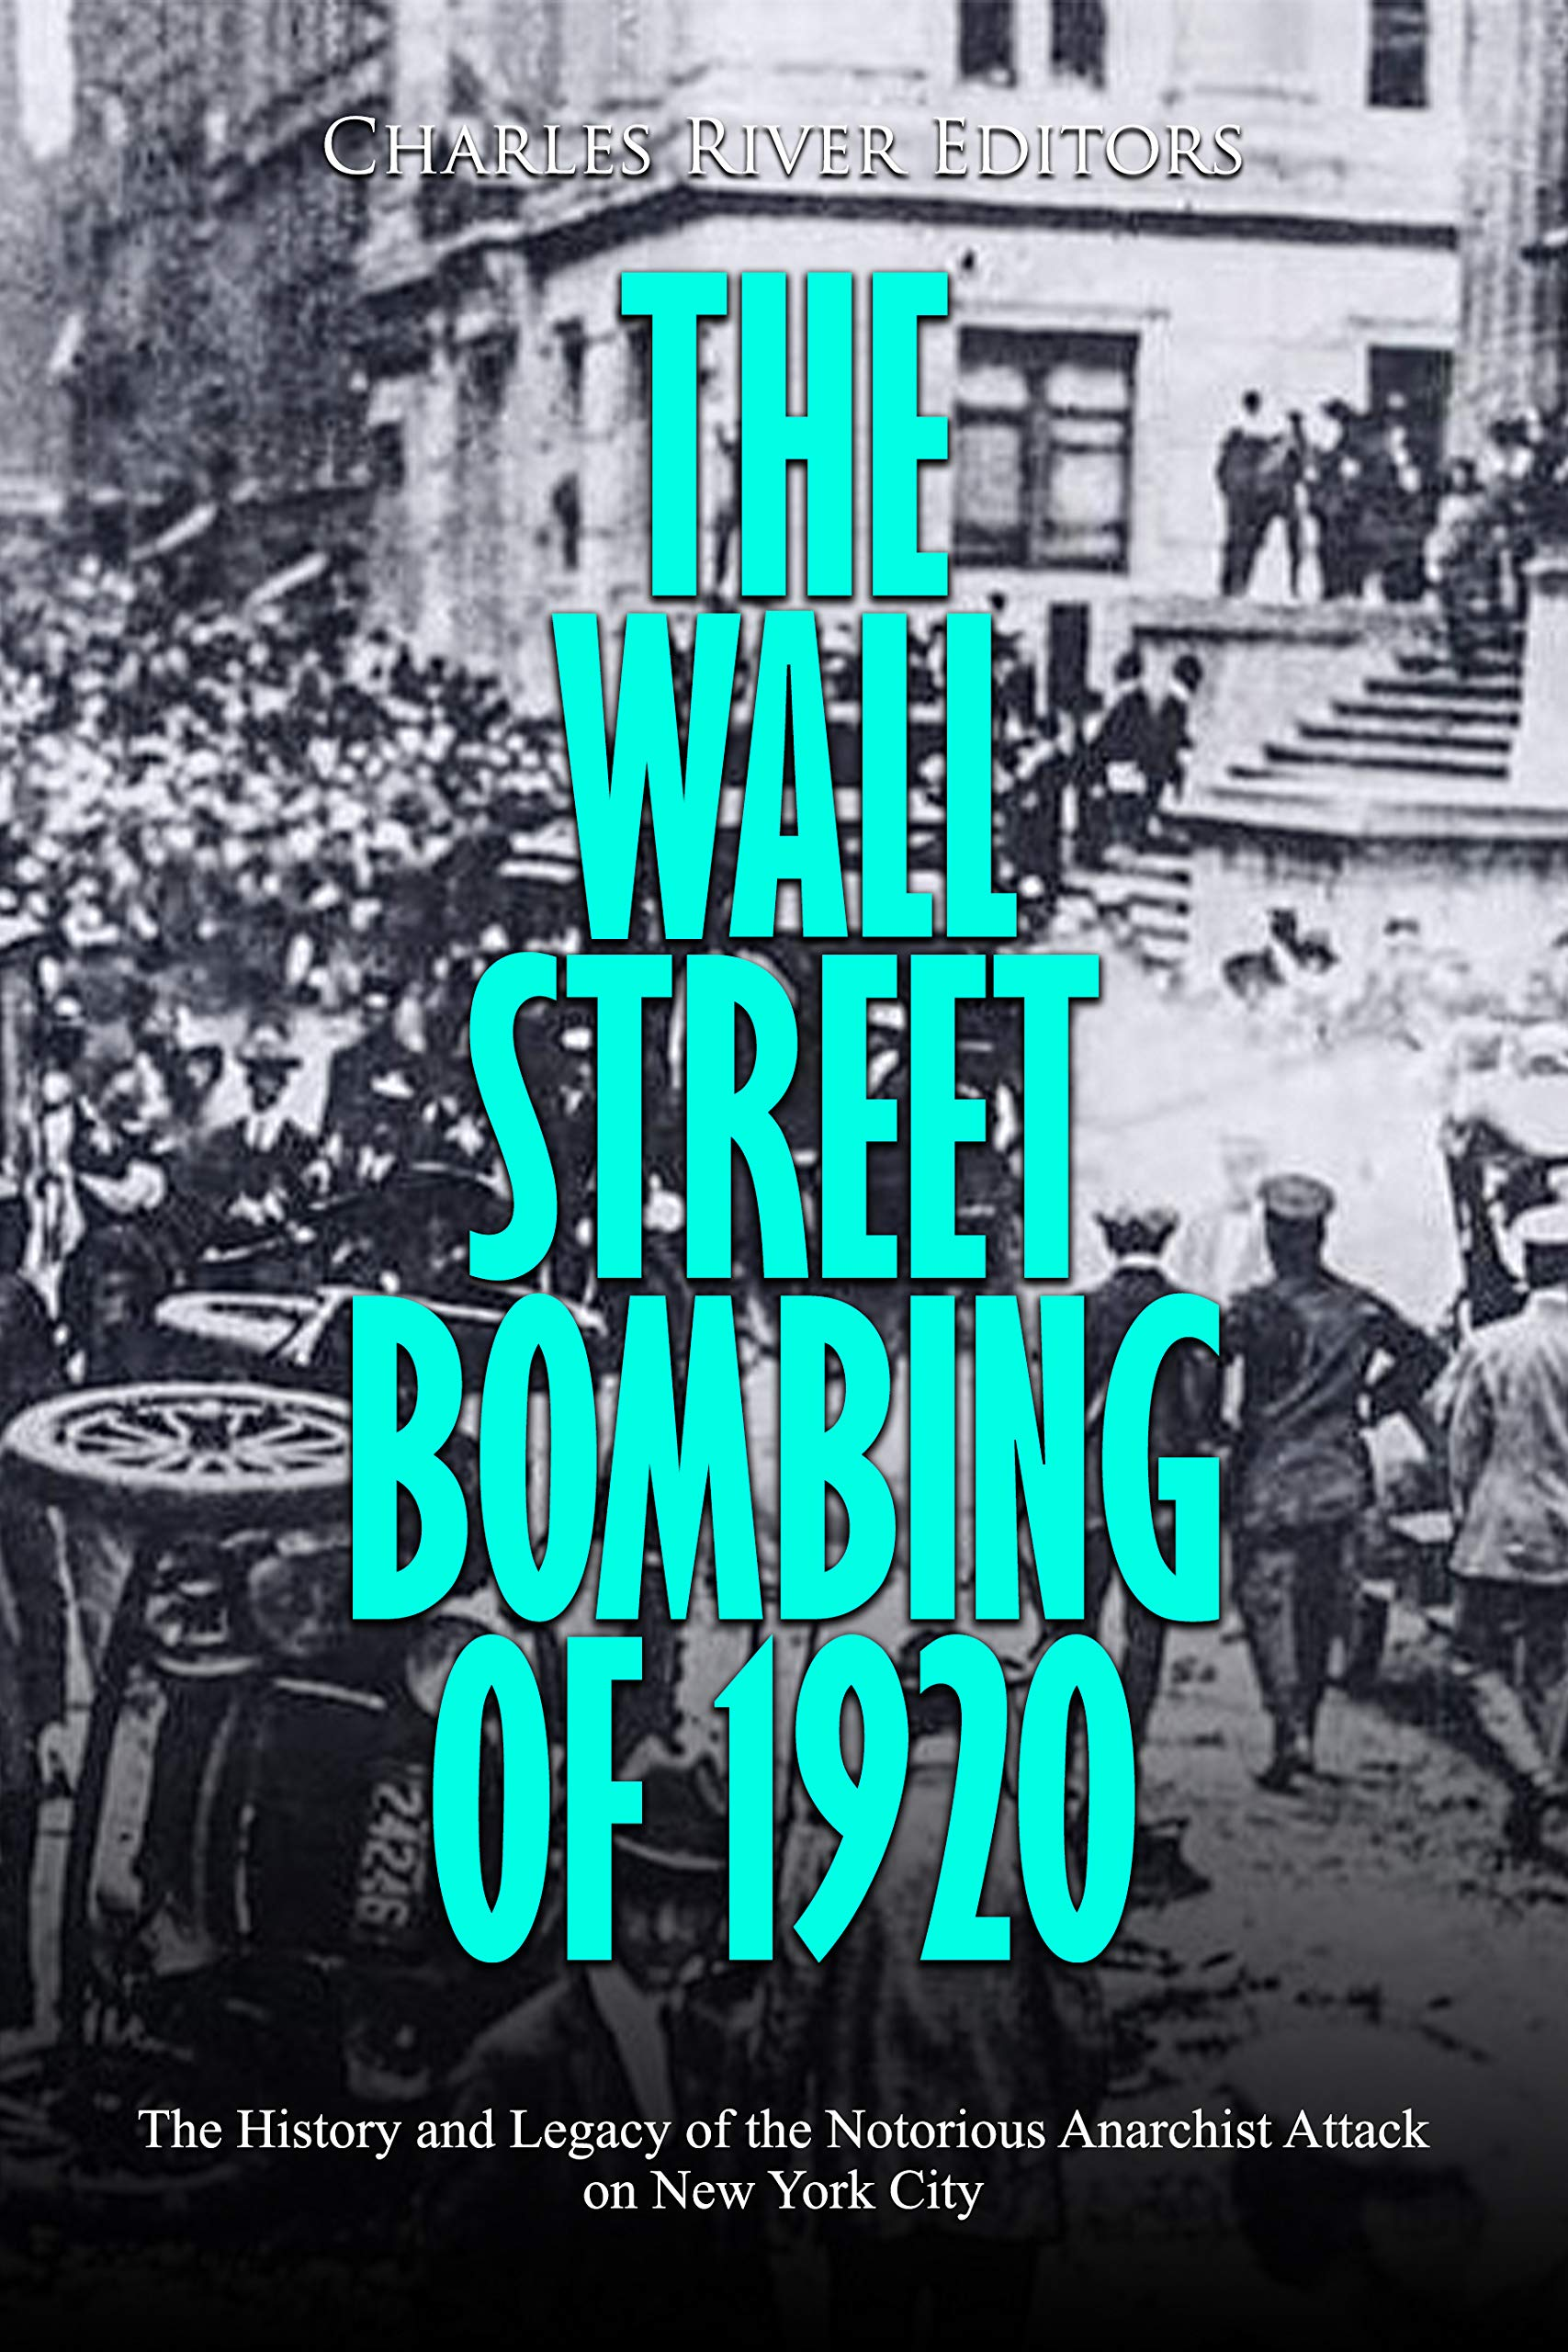 The Wall Street Bombing of 1920: The History and Legacy of the Notorious Anarchist Attack on New York City